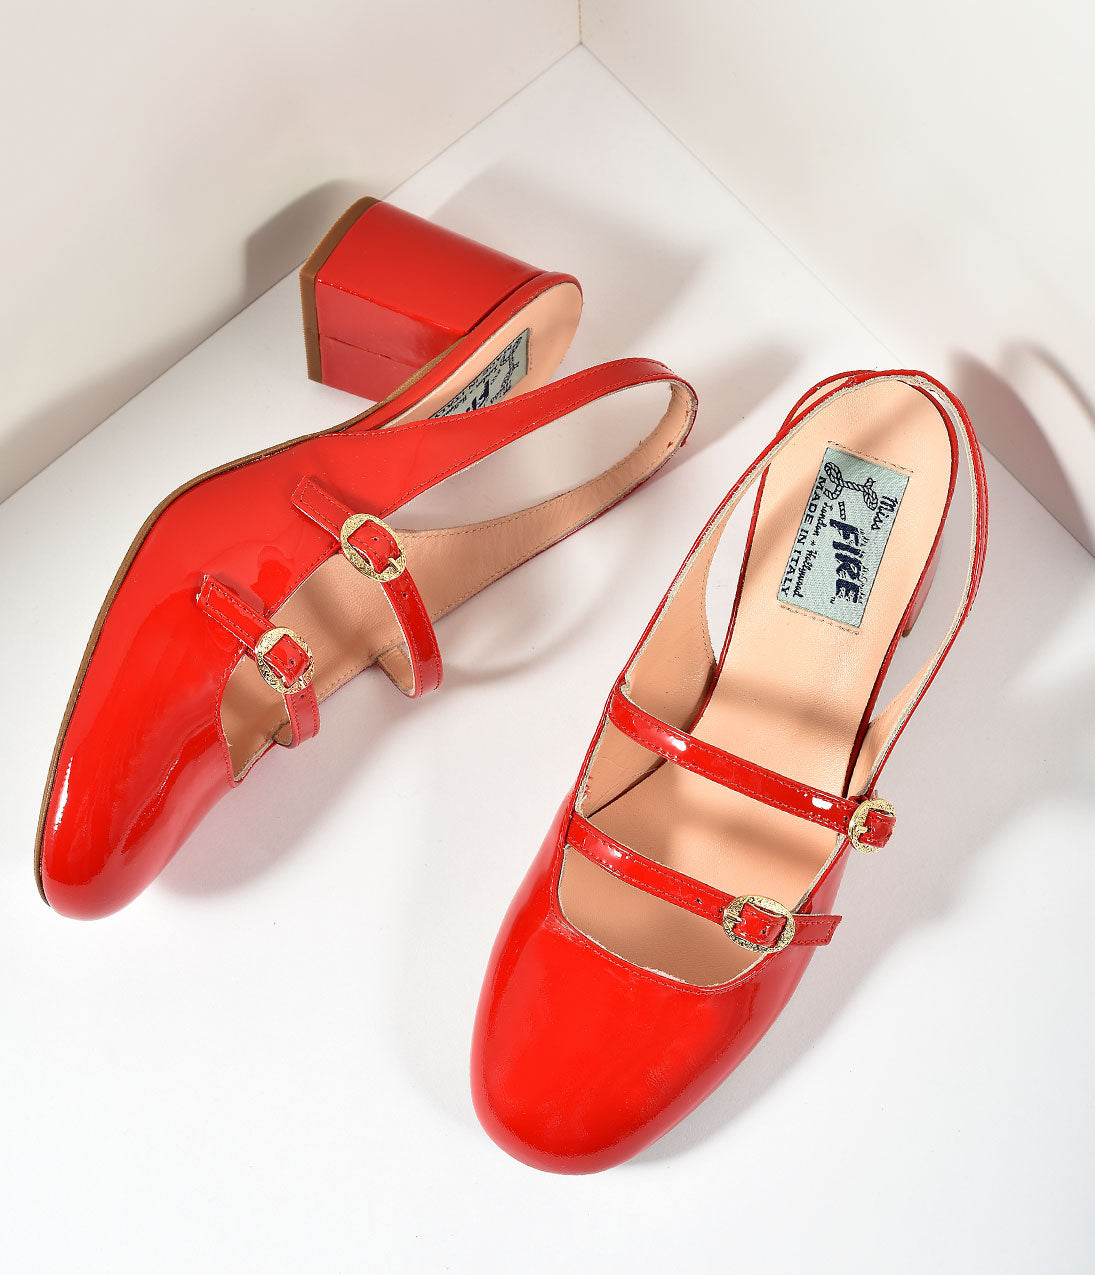 60s Shoes, Boots | 70s Shoes, Platforms, Boots Miss L Fire 1960s Style Red Patent Leather Mary Jane Open Dolly Heels Shoes $195.00 AT vintagedancer.com